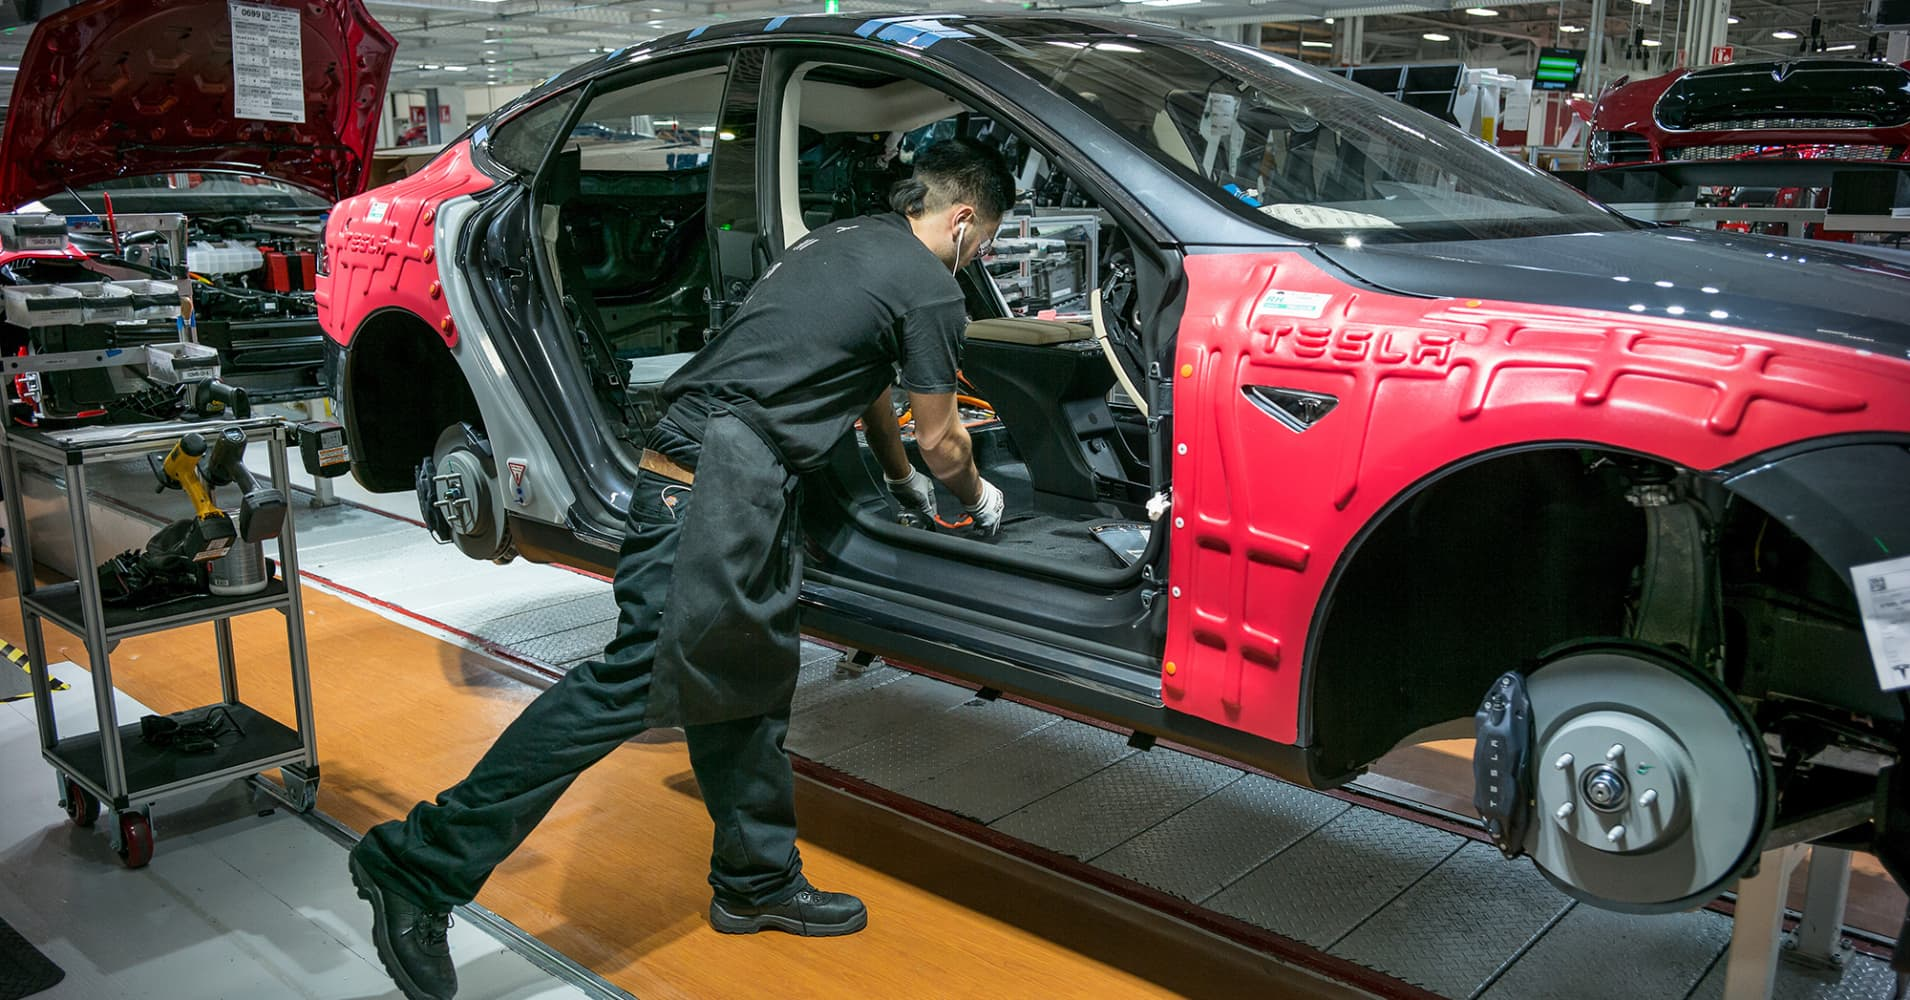 Tesla injury rate higher than industry average, said new report